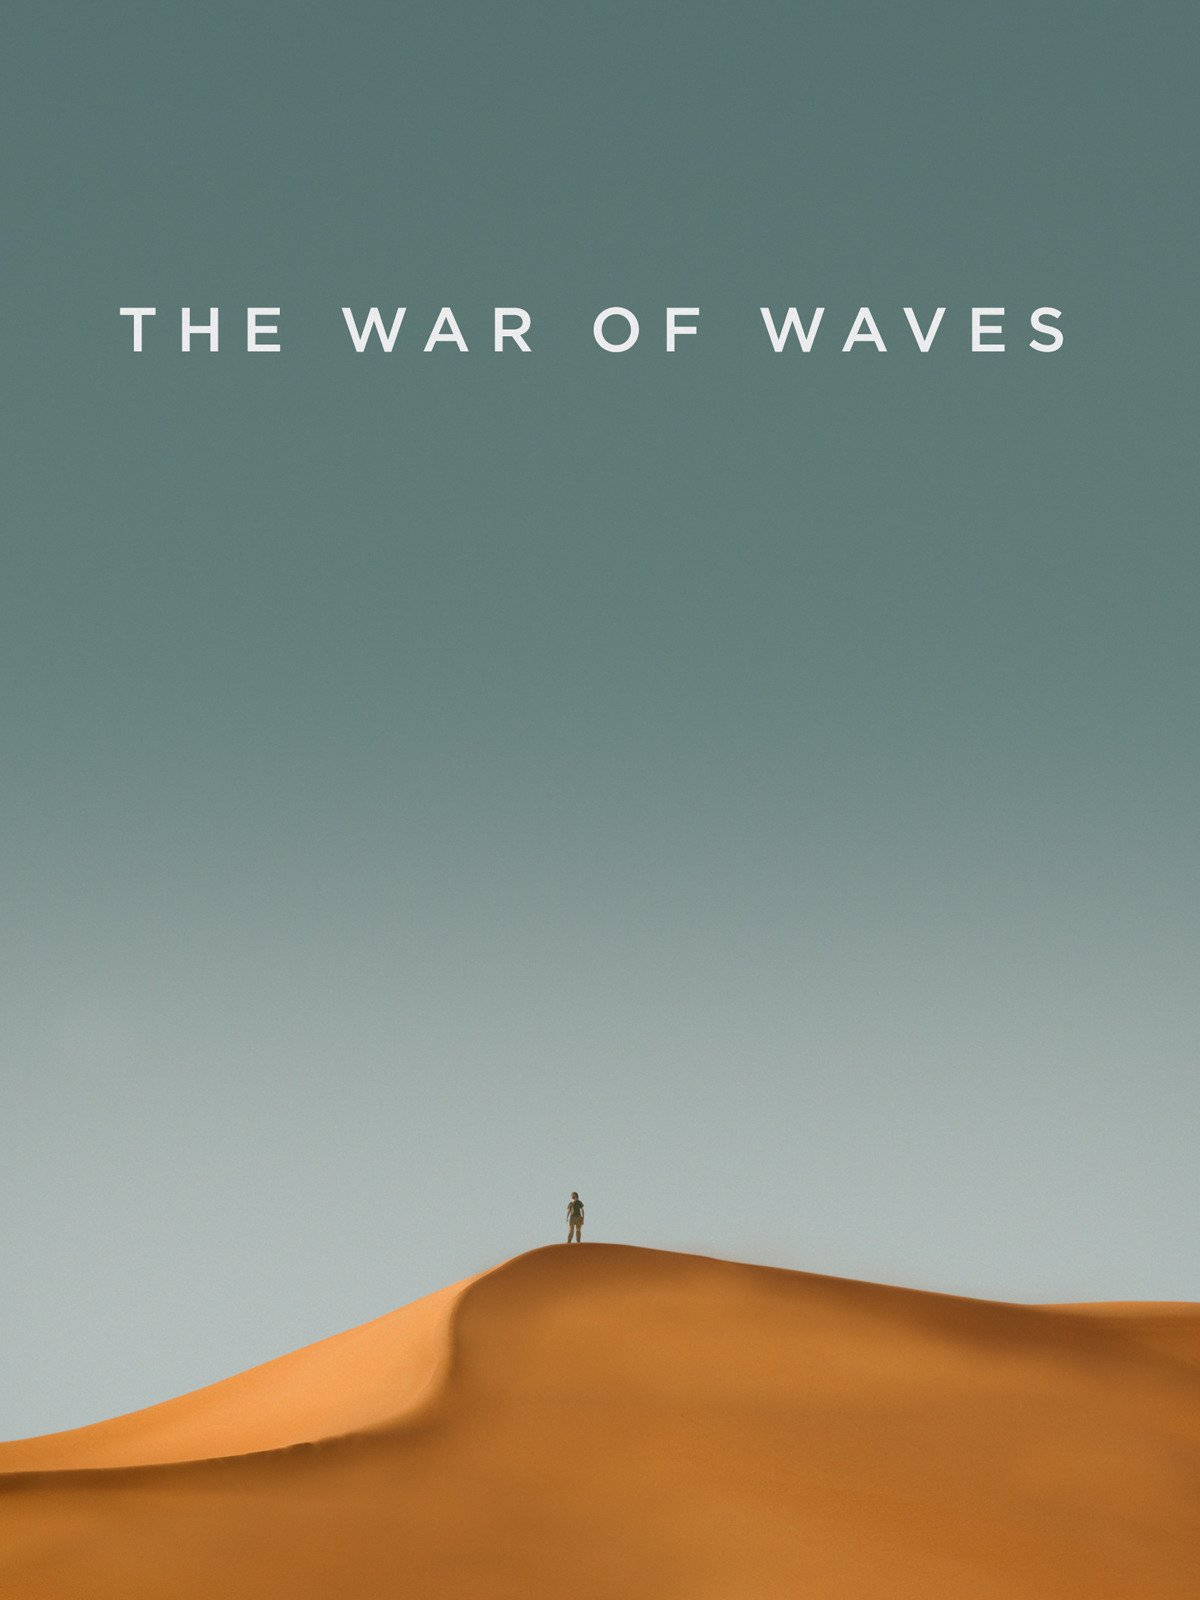 The War of Waves